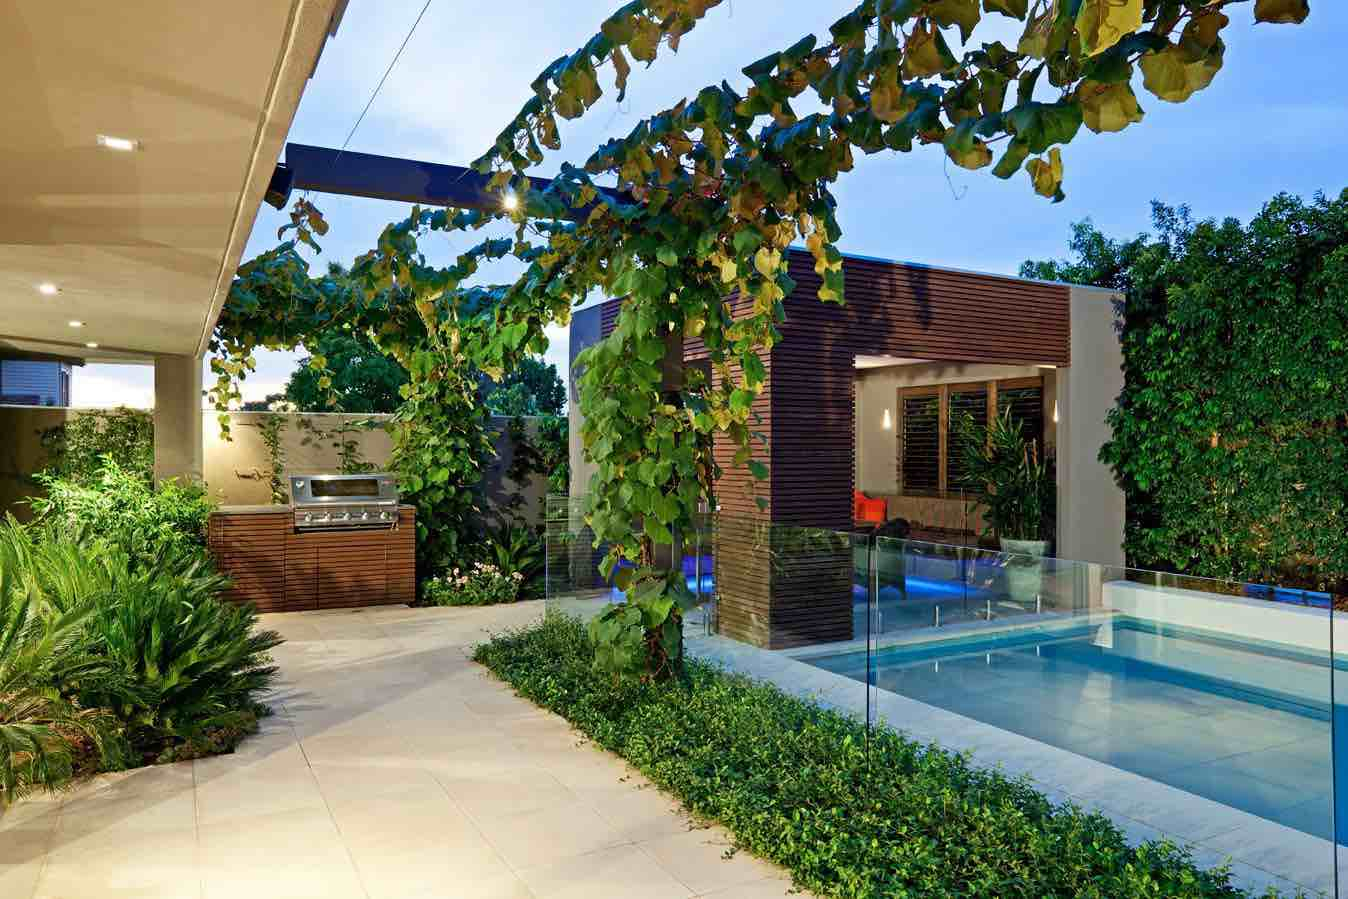 small backyard home design idea - Small Backyard Design Ideas